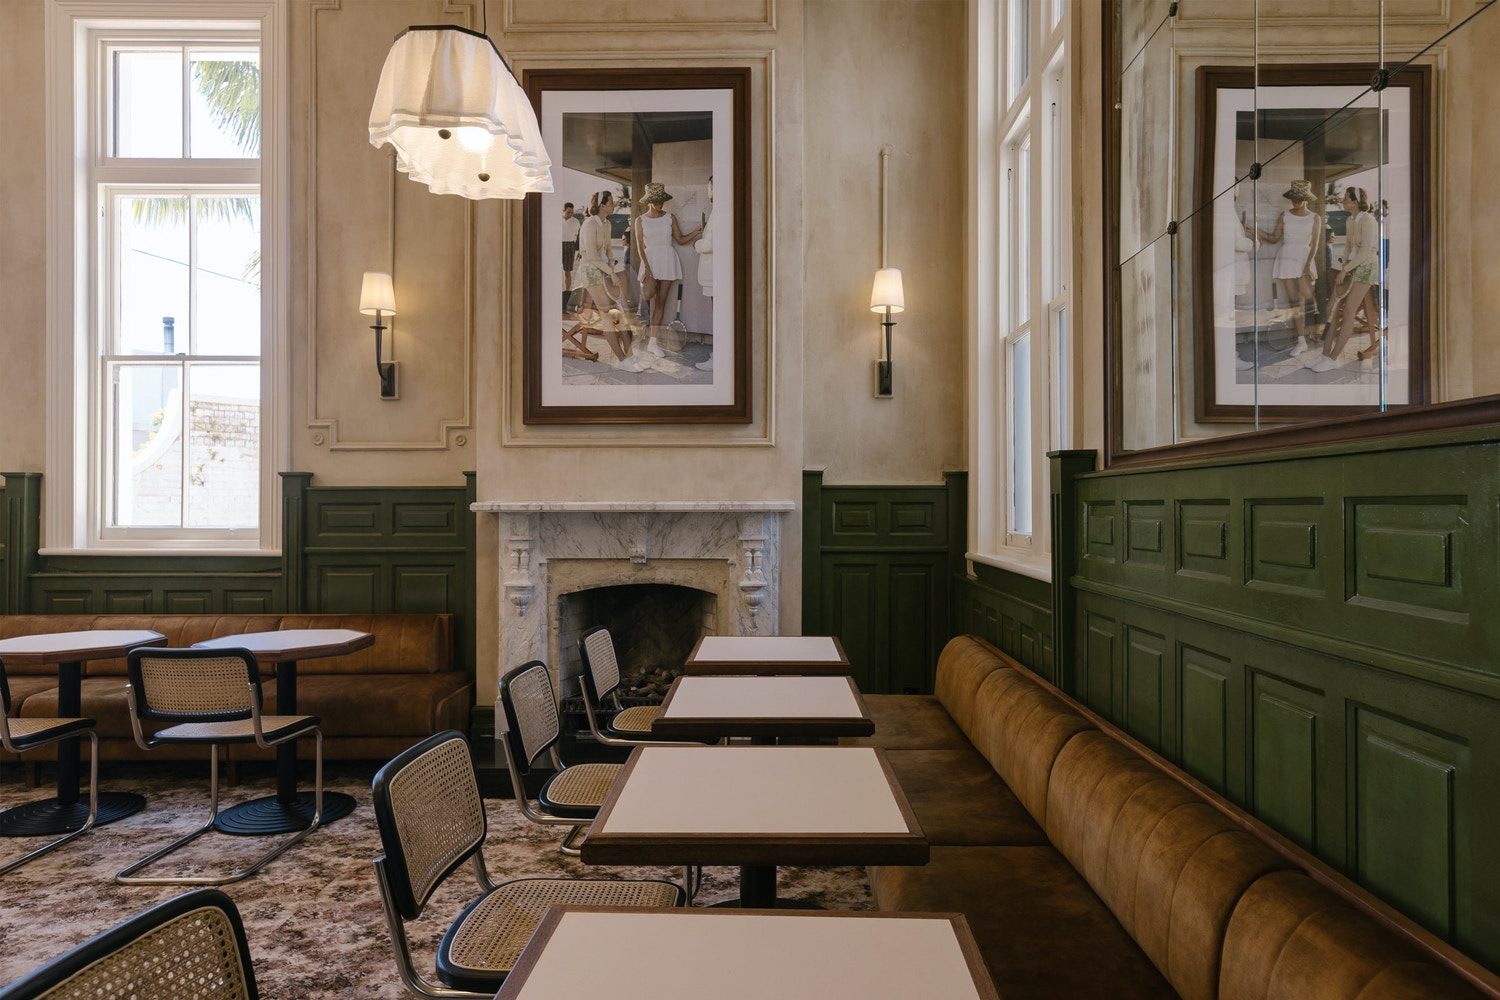 1930s pubs inform the interiors of Hotel Ponsenby